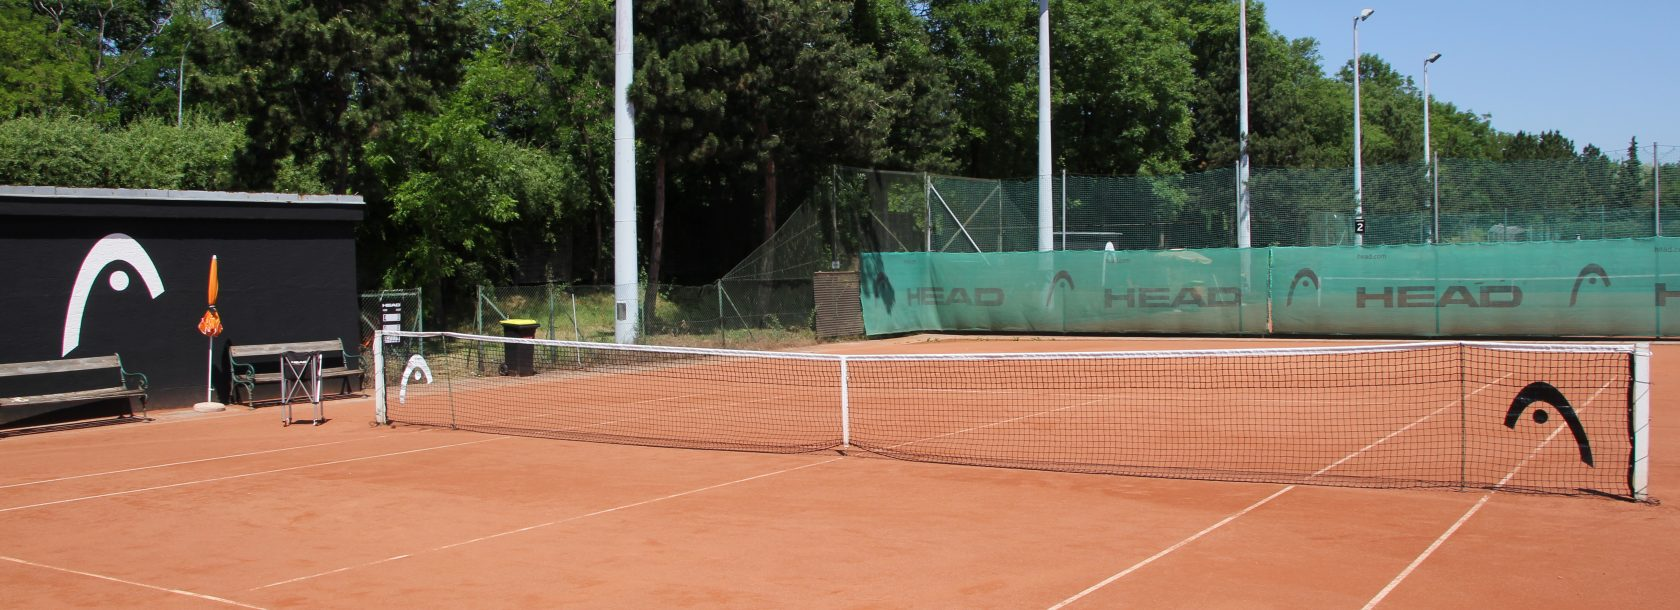 Austragungsorte Austragungsort - Center Court Südstadt